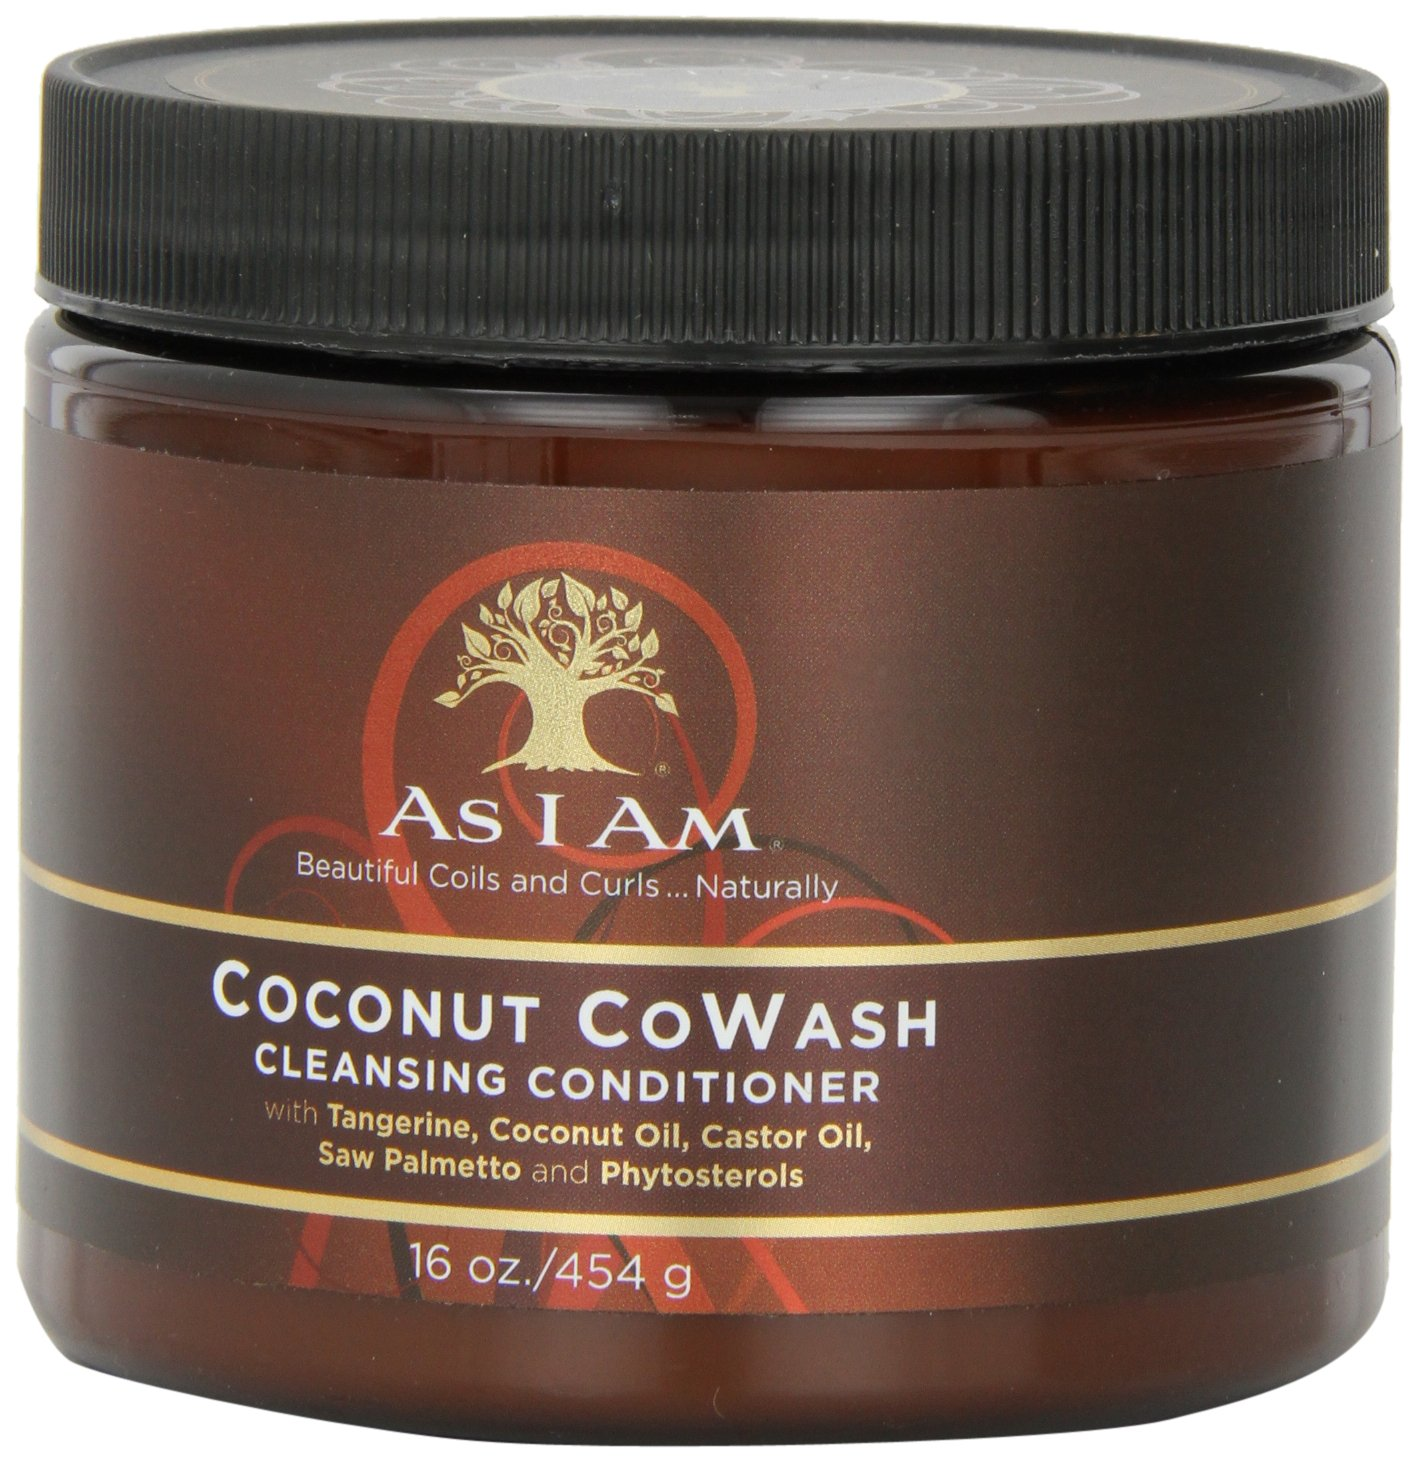 As I Am Coconut Cowash Cleansing Conditioner, 16 Ounce 002141